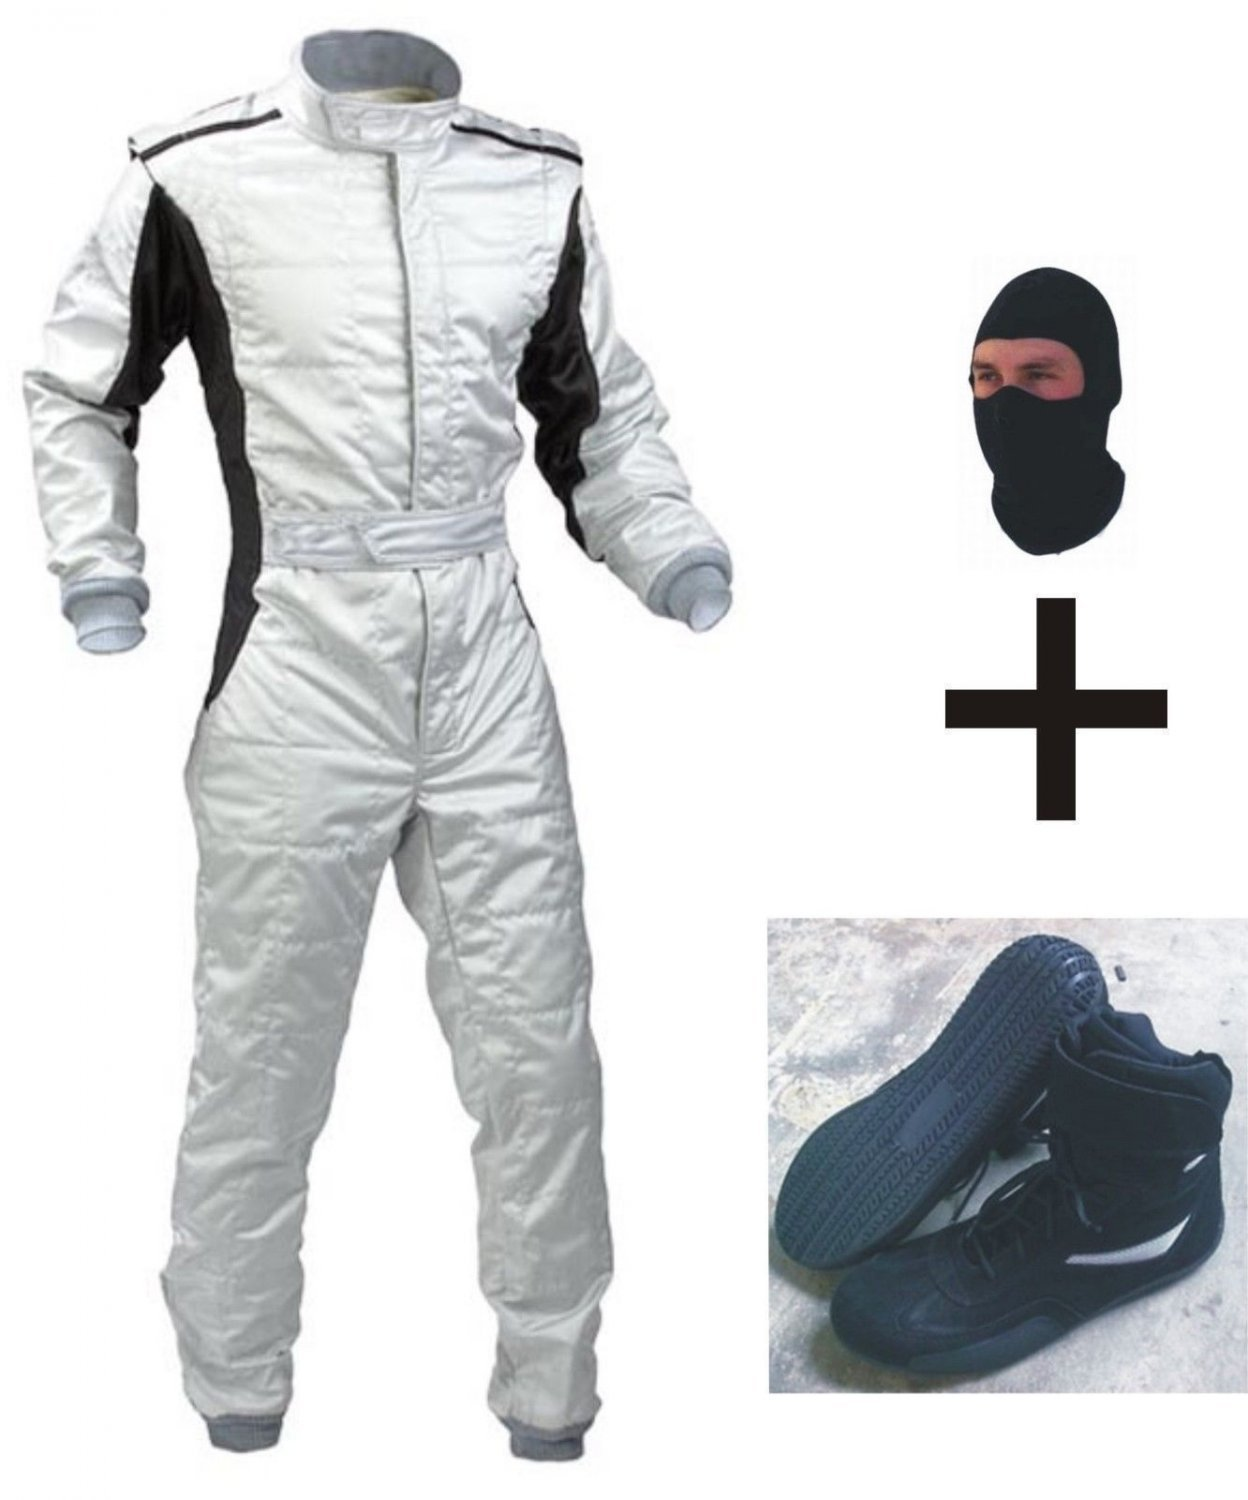 Latest Design Go Kart Race Suit Pack With Free Gifts